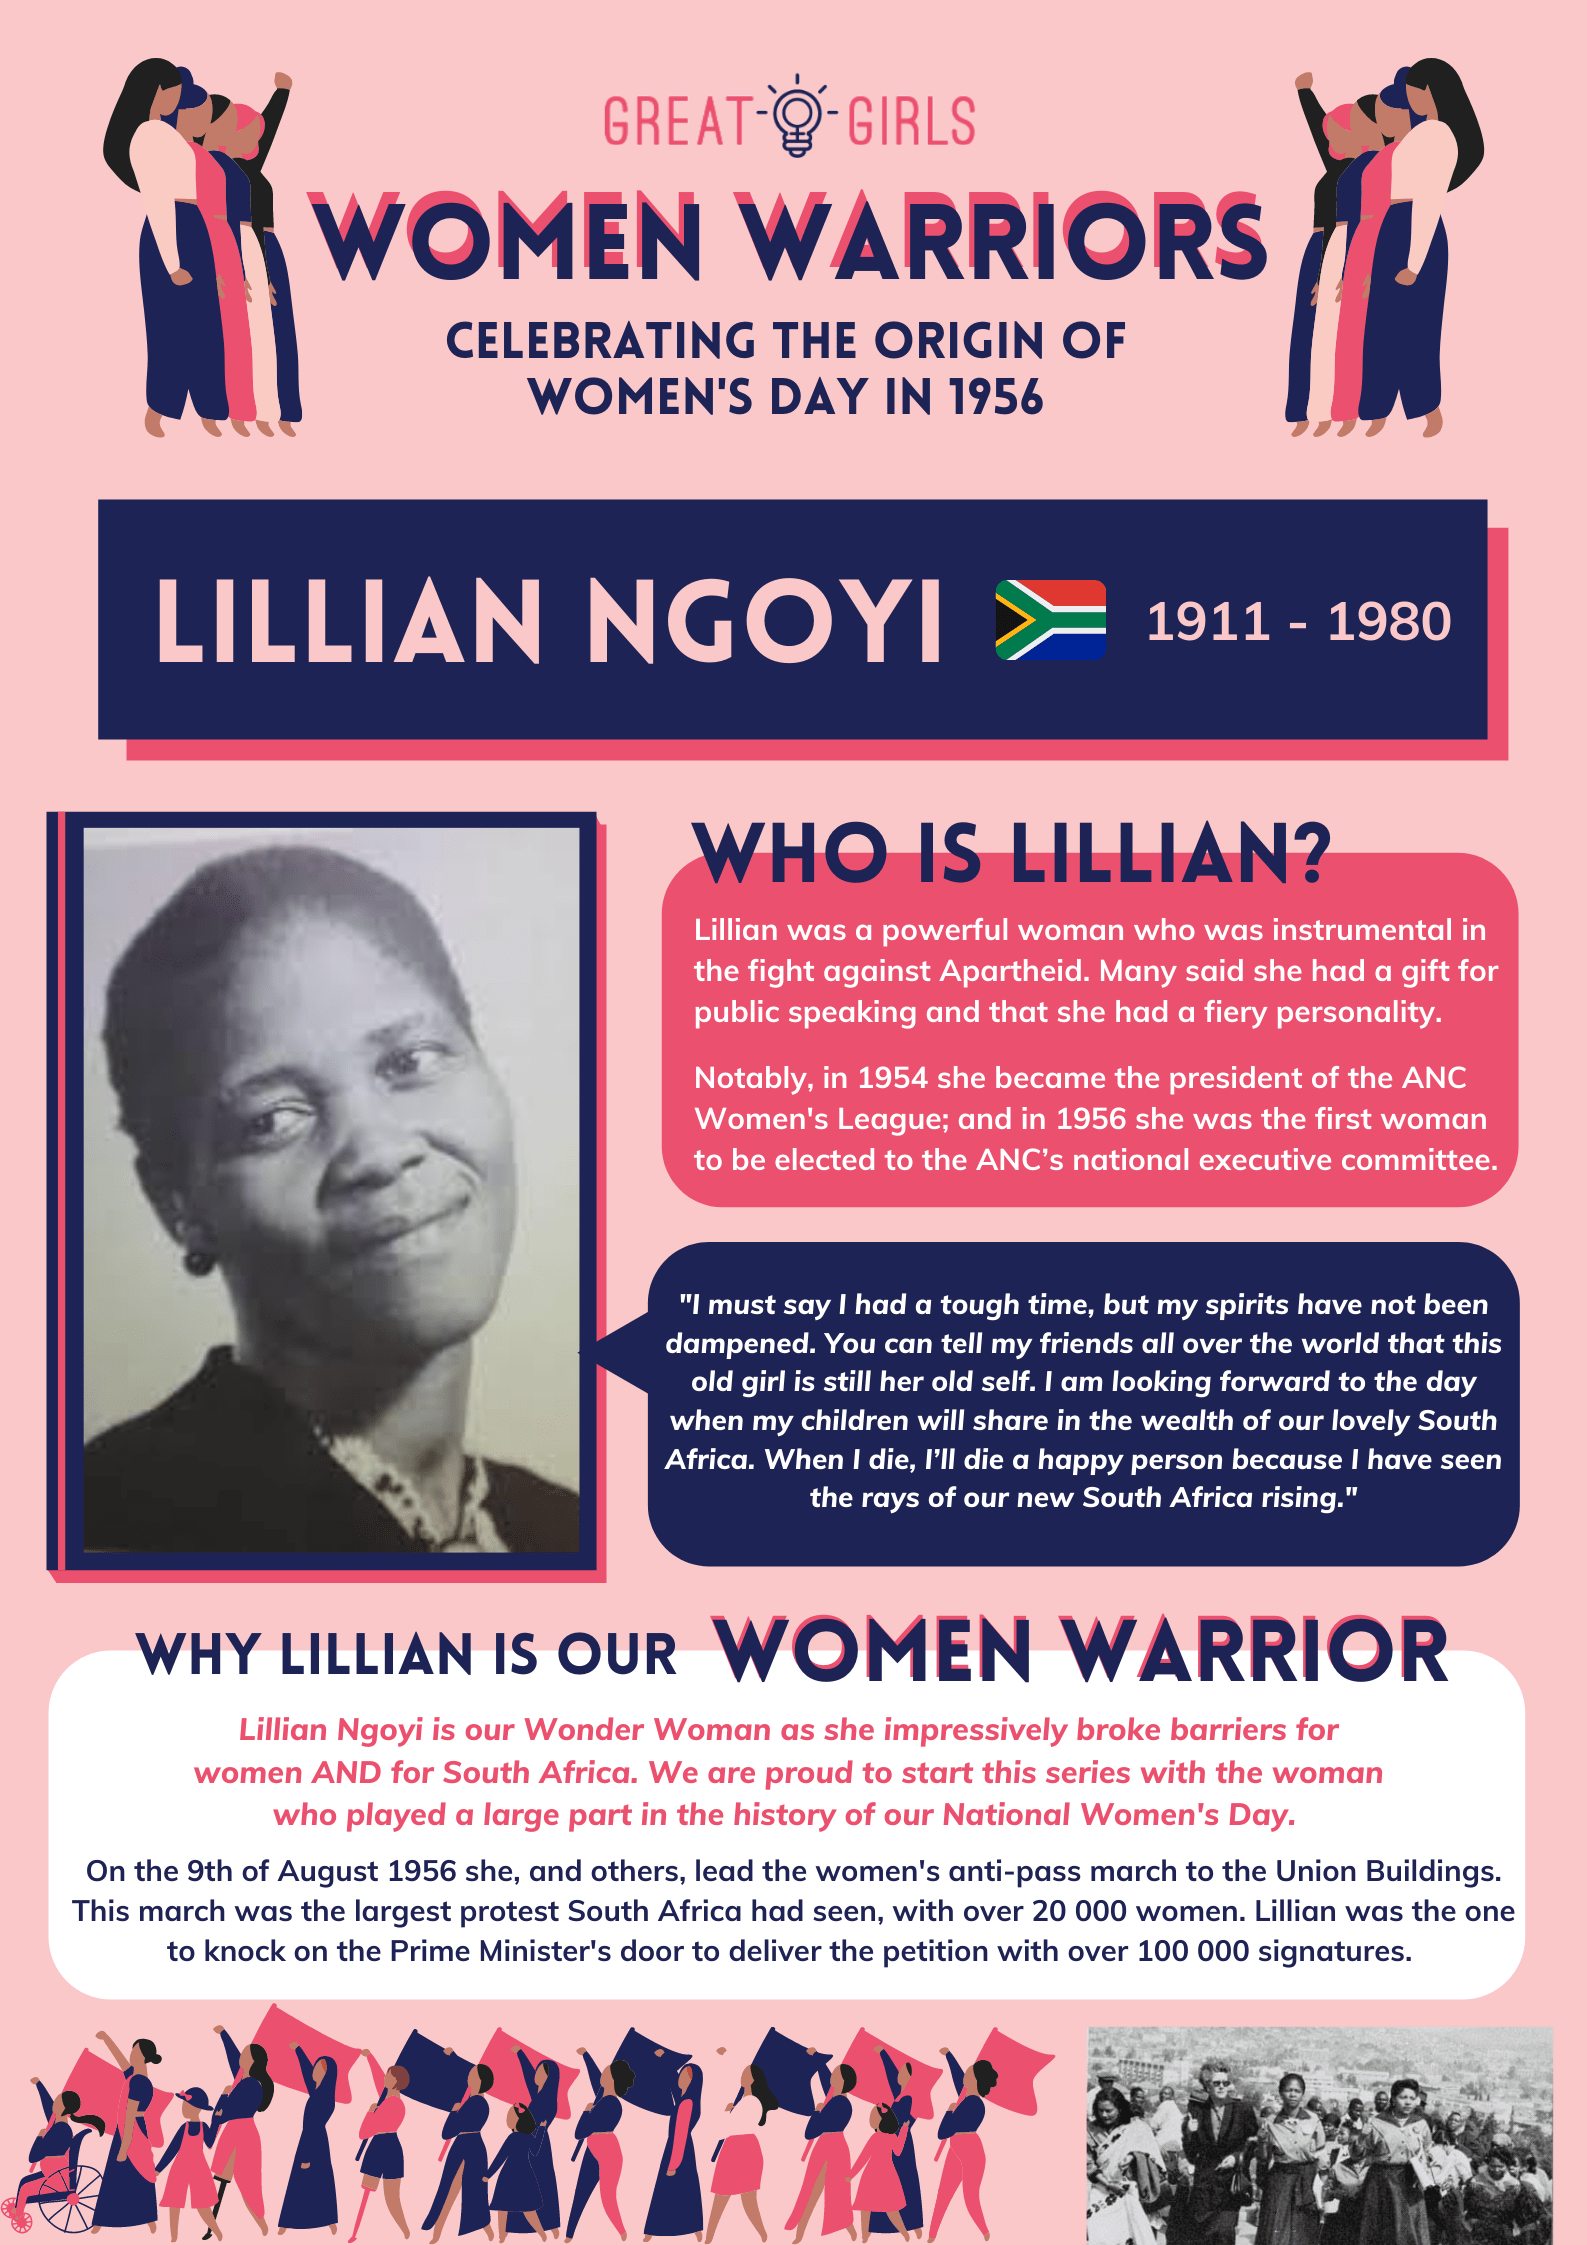 Women Warrior - Lillian Ngoyi